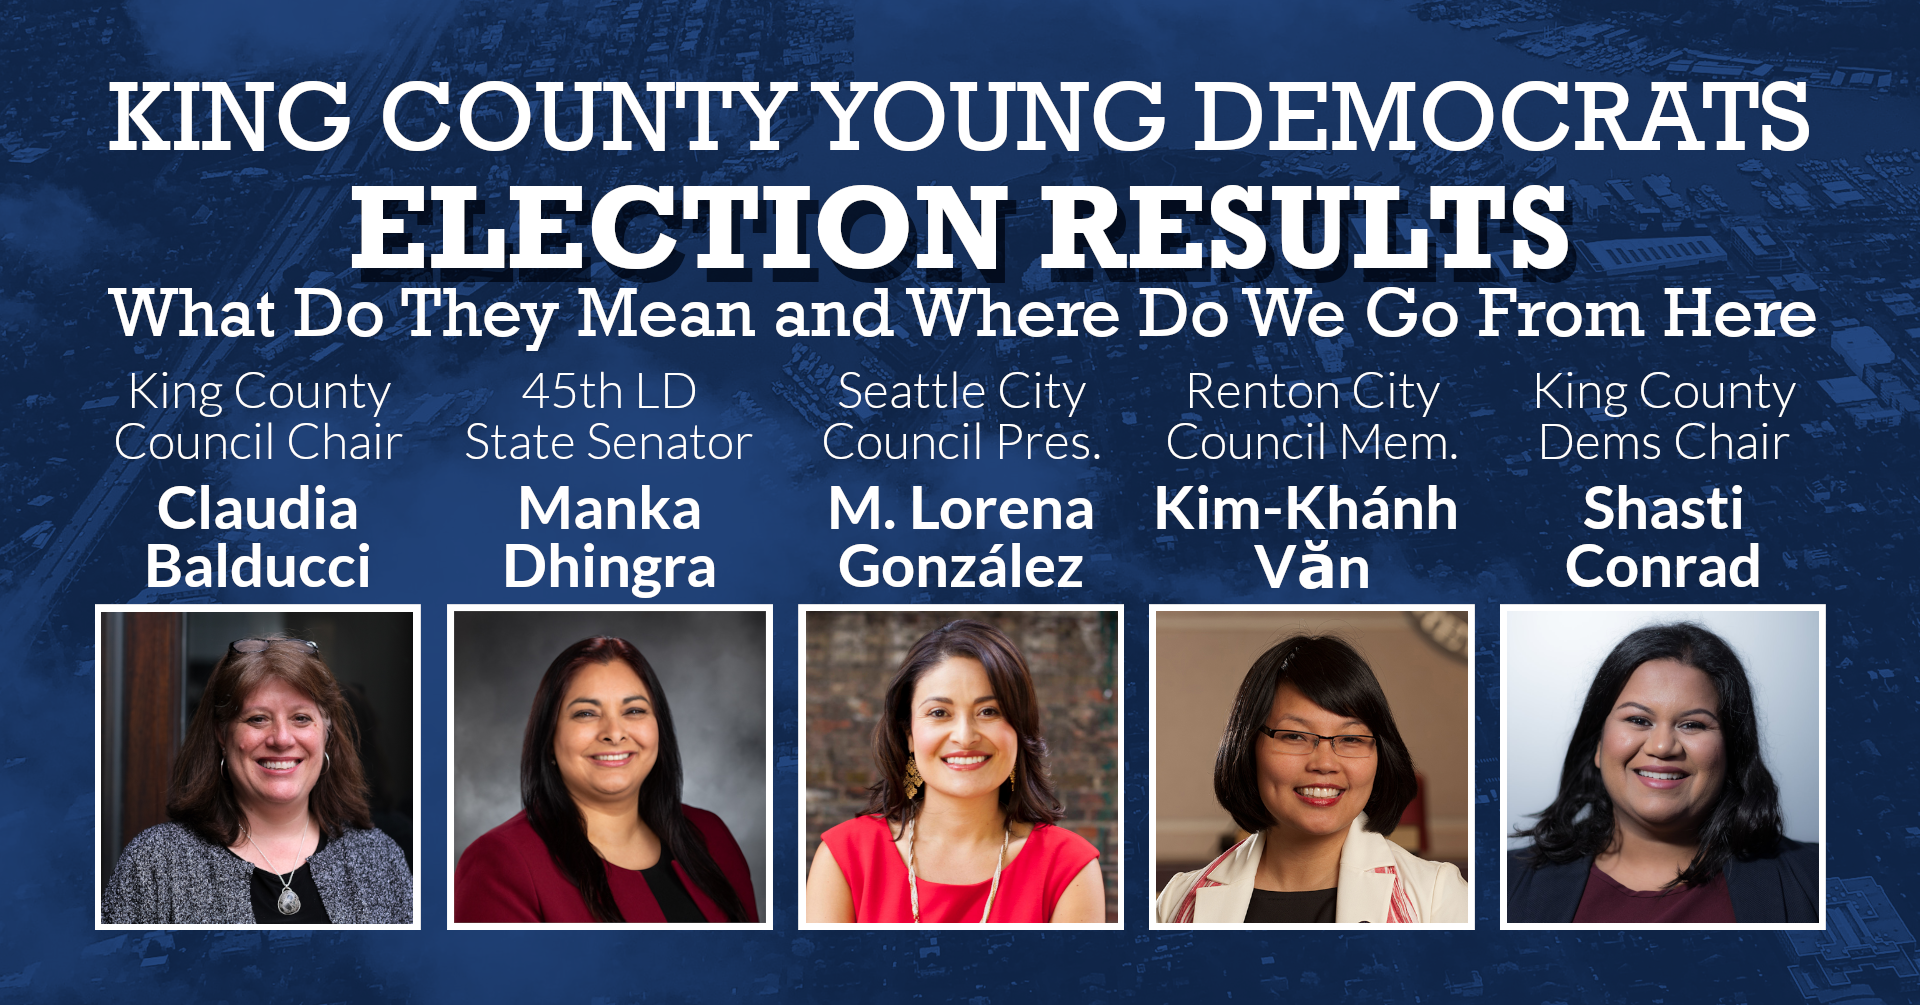 Election Results: What Do They Mean and Where Do We Go From Here, with King County Council Chair Claudia Balducci, 45th LD State Senator Manka Dhingra, Seattle City Council President Lorena Gonzalez, Renton City Council Member Kim-Khanh Van, and King County Democrats Chair Shasti Conrad